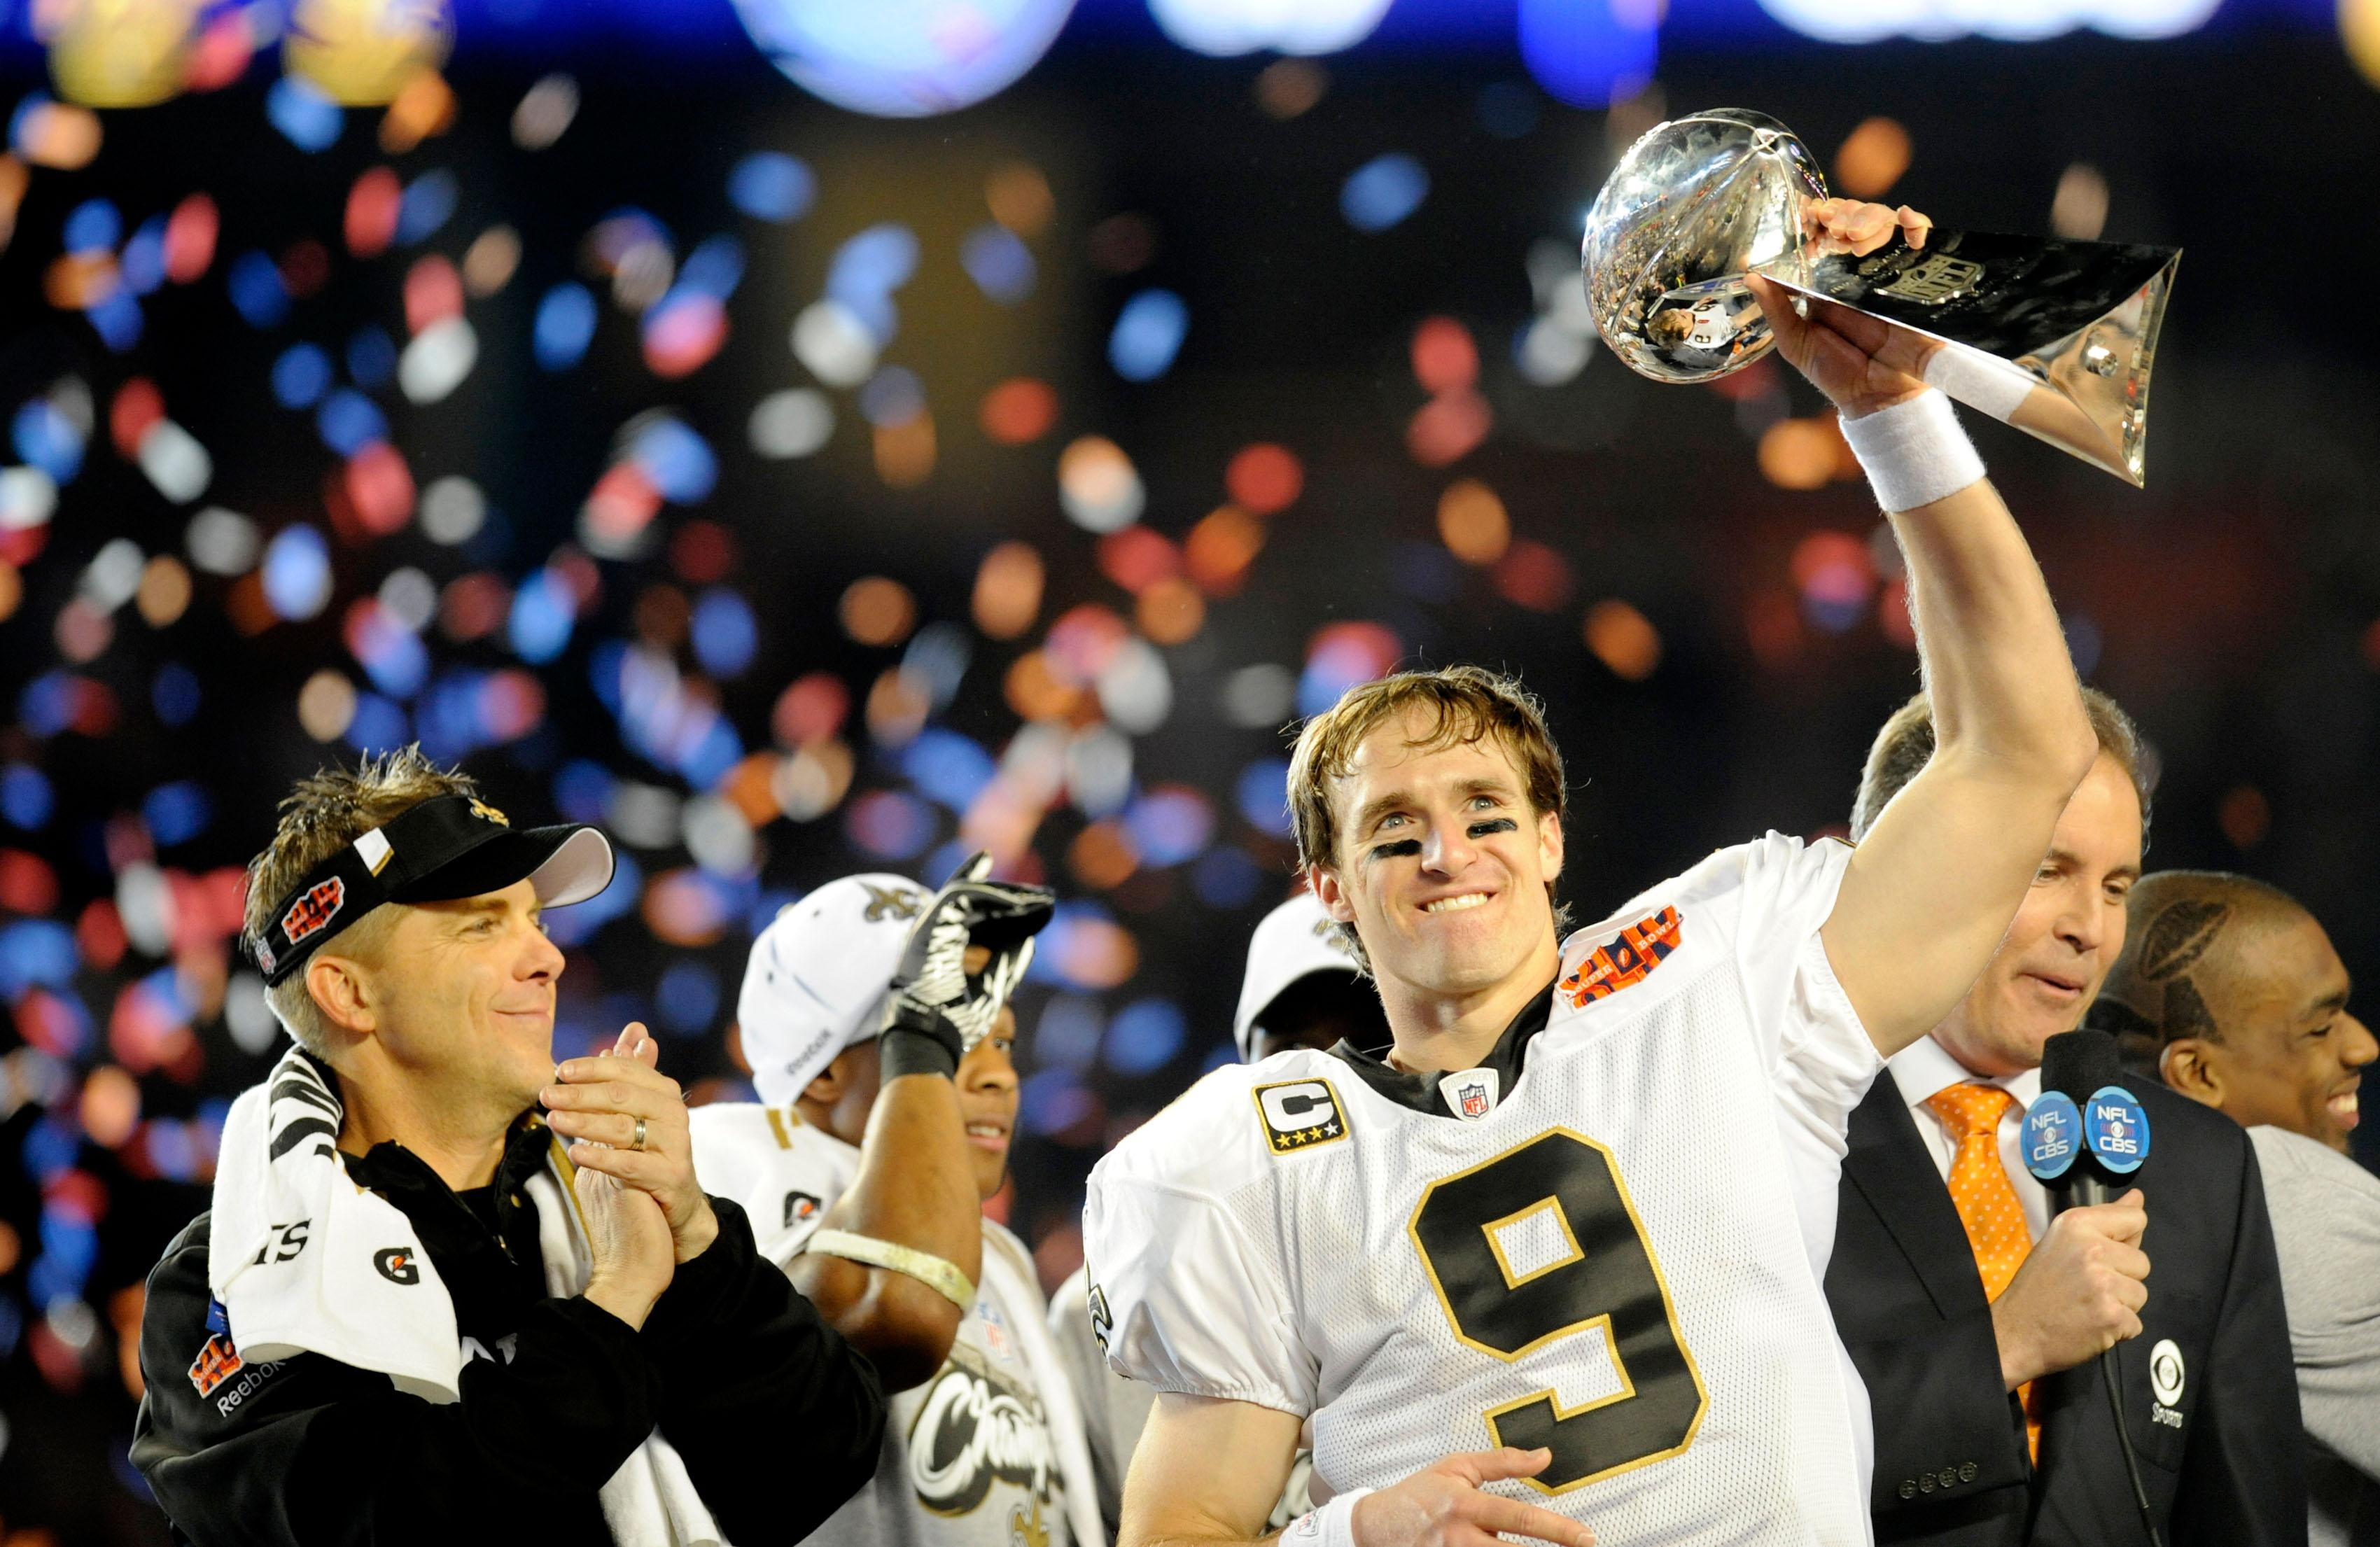 Brees only has one Super Bowl win, but is near the top of almost every all-time stat